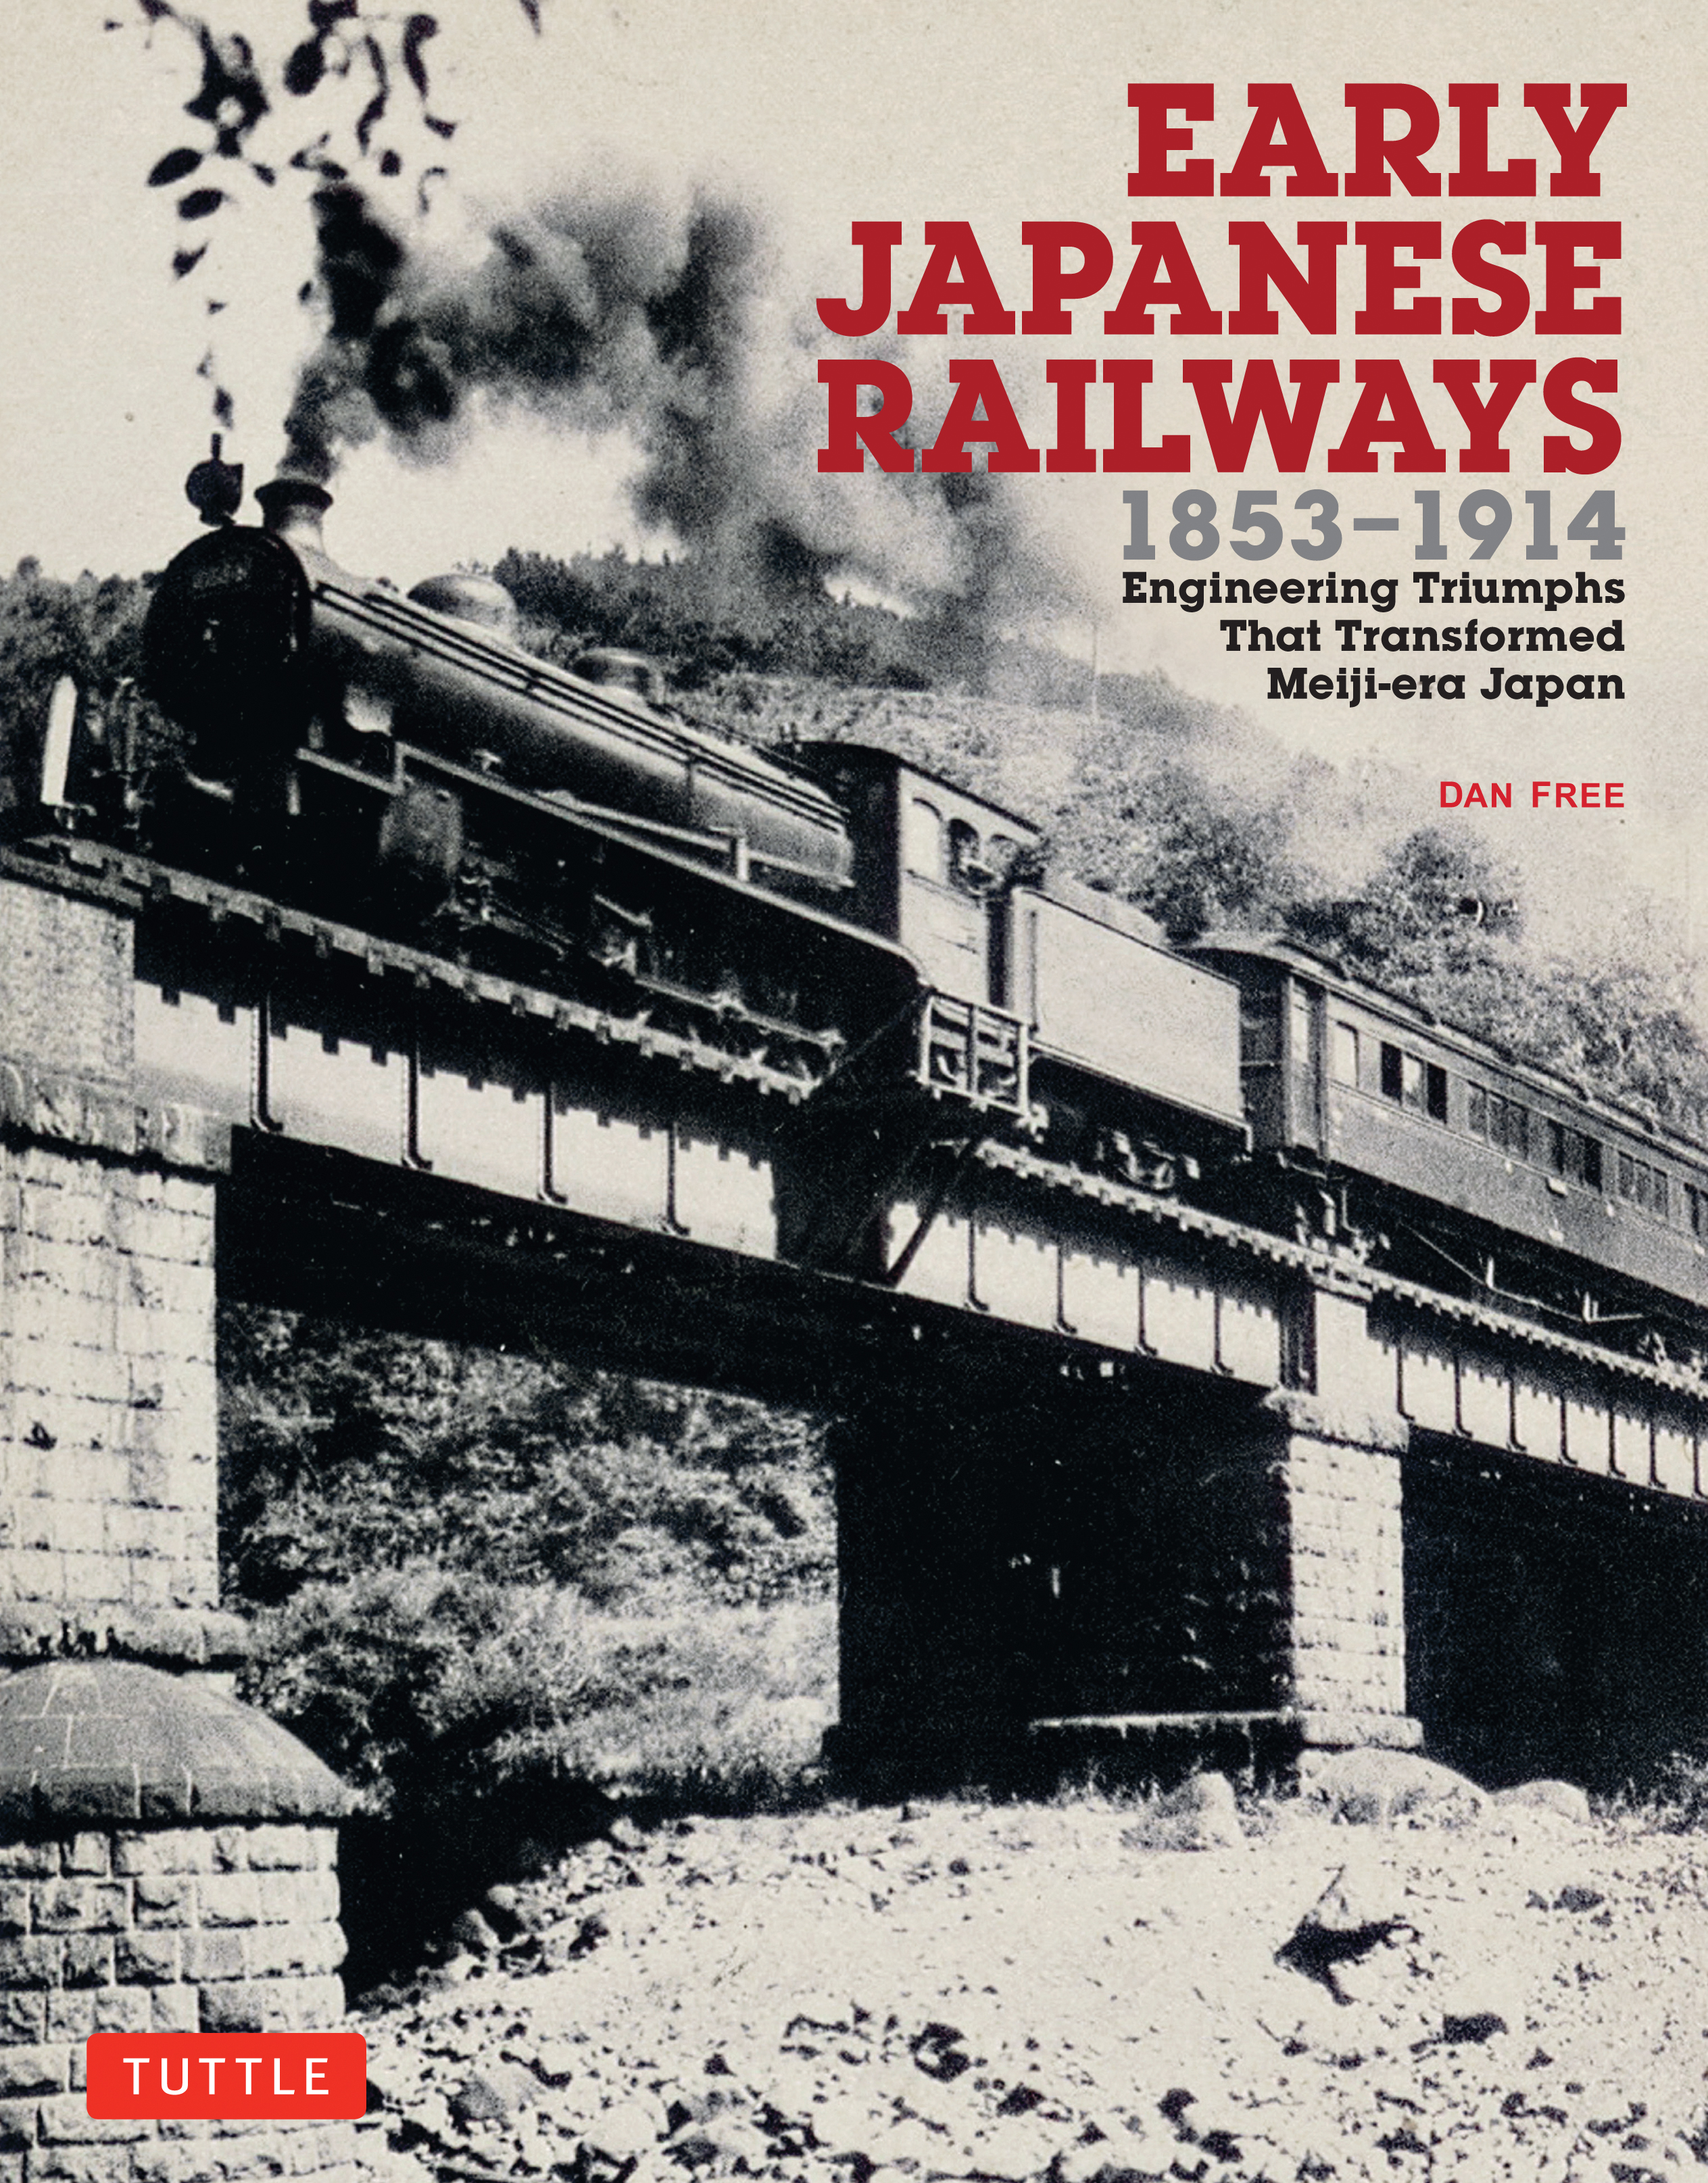 Early-japanese-railways-1853-1914-9784805312902_hr